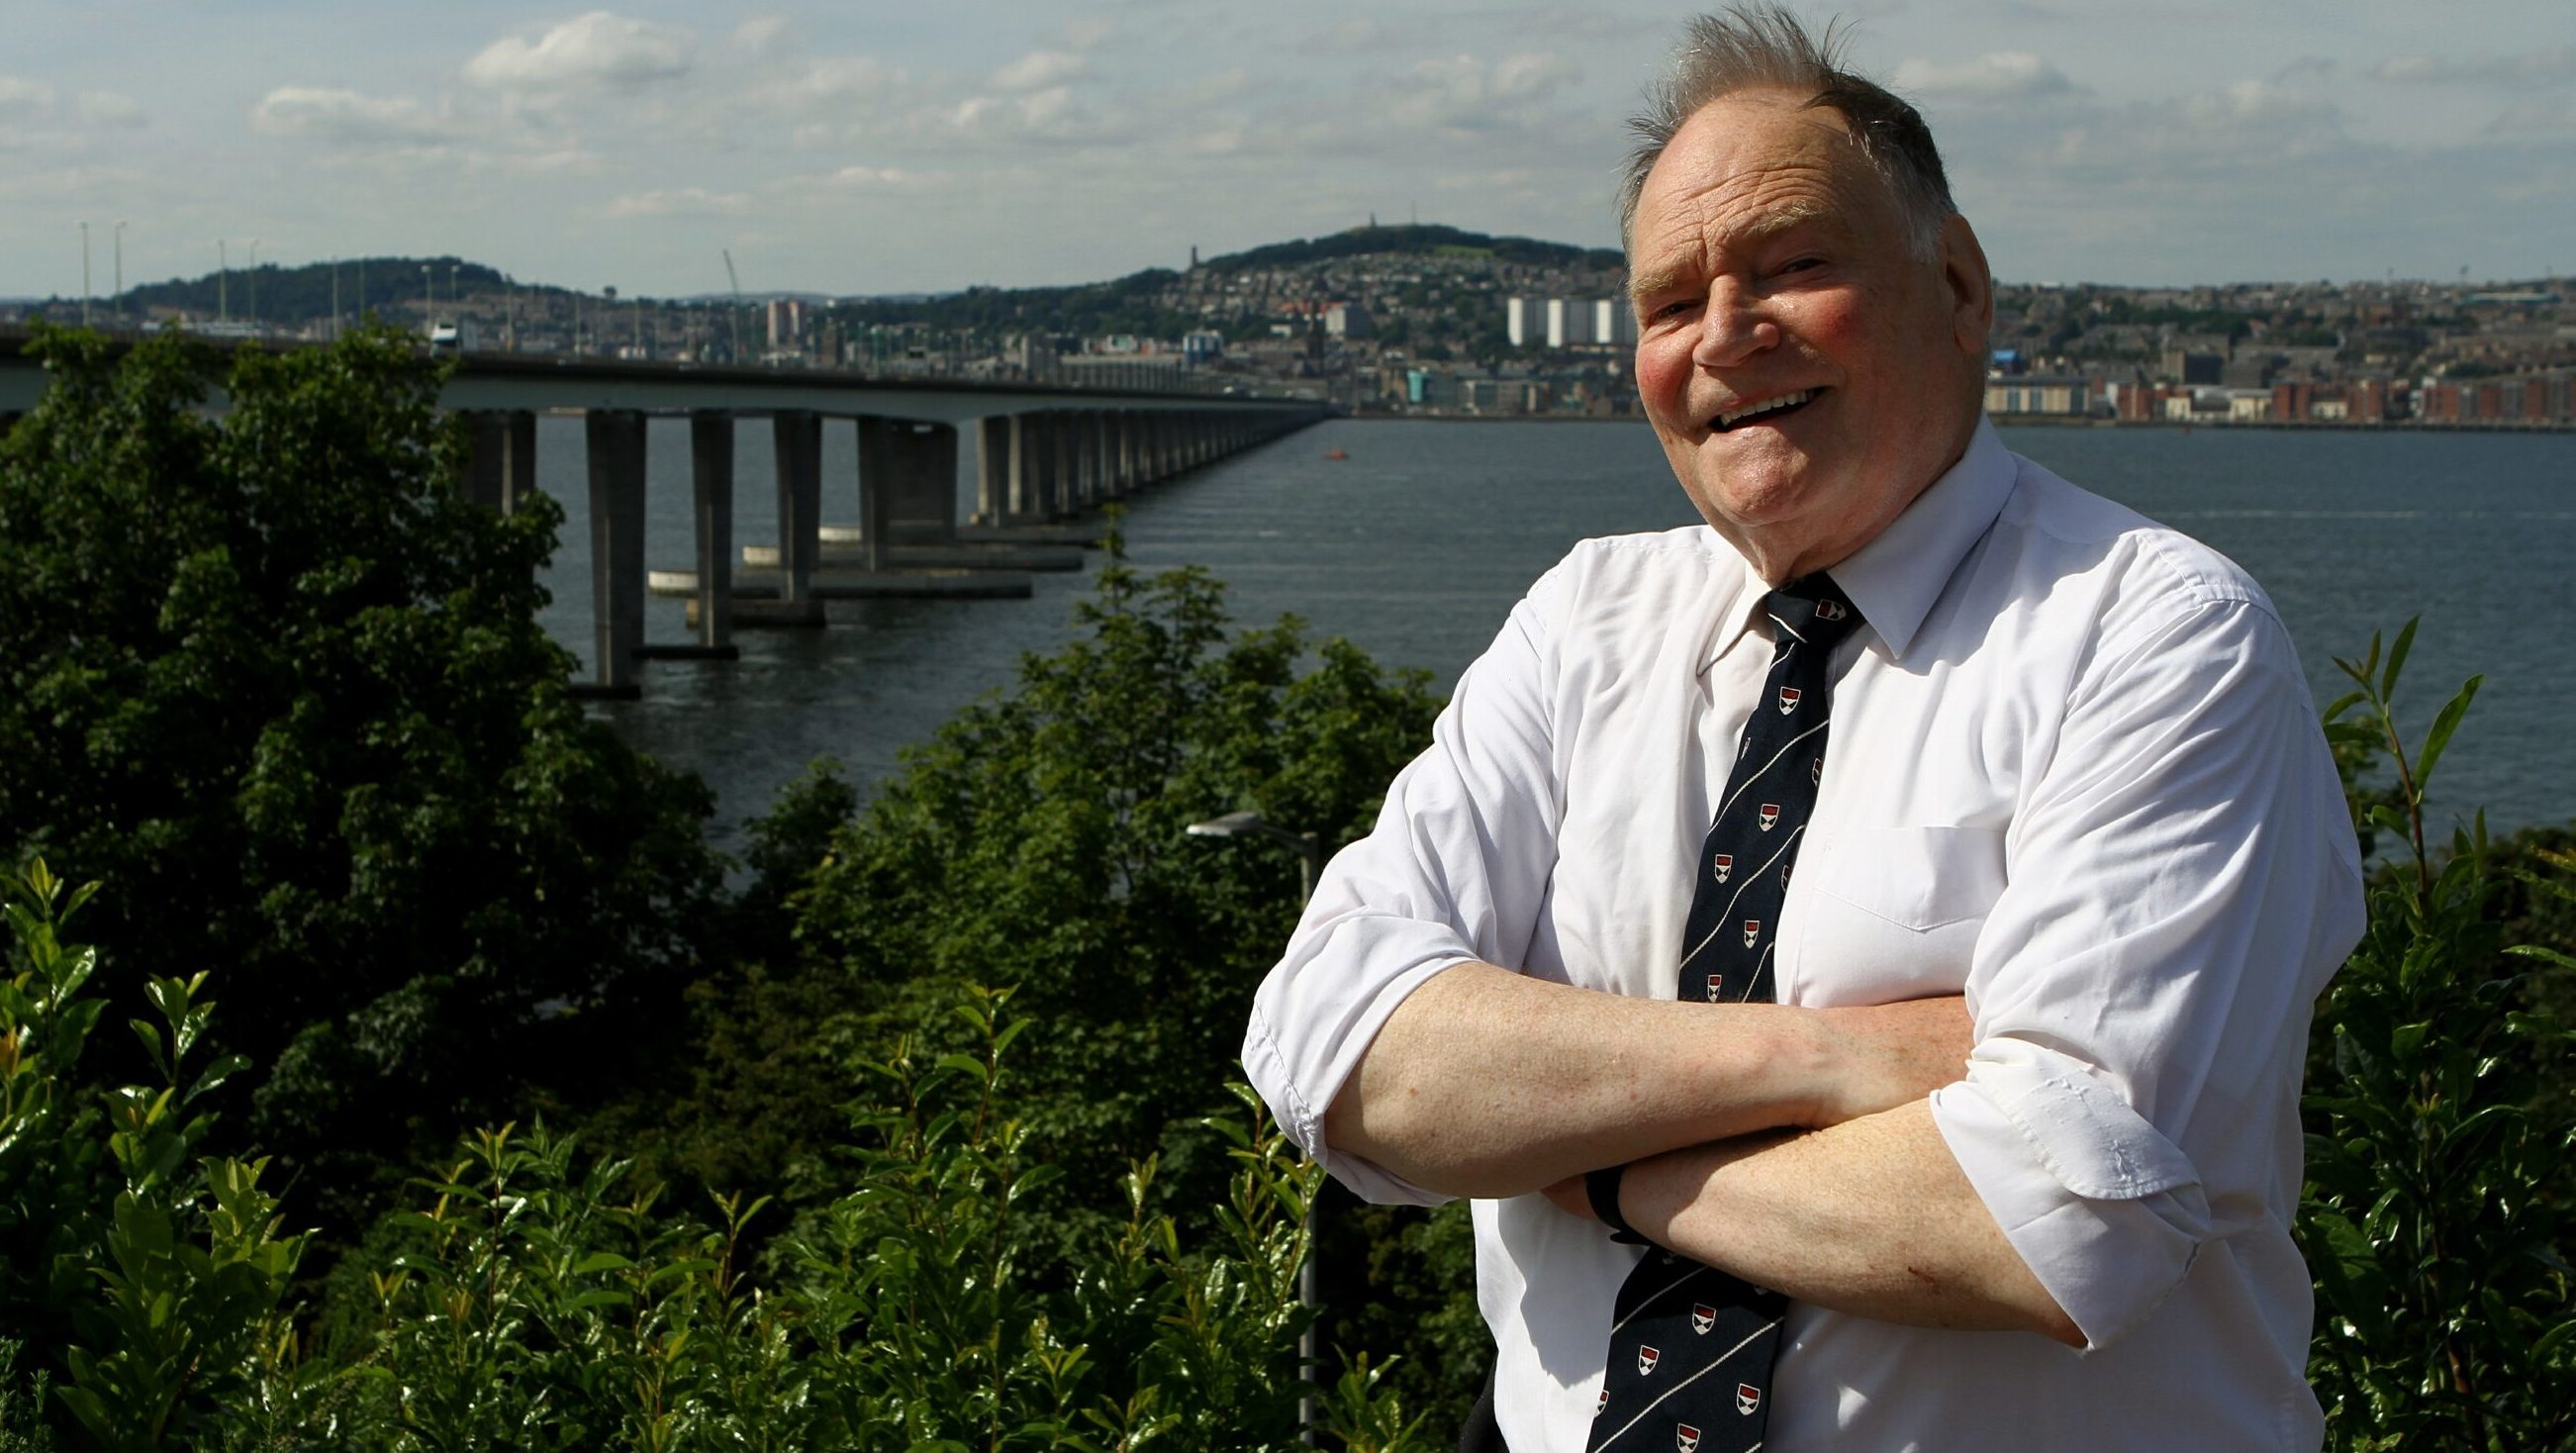 Hugh Pincott in 2016 when he returned to the Tay Road Bridge 50 years after he made history by becoming the first member of the public to drive across